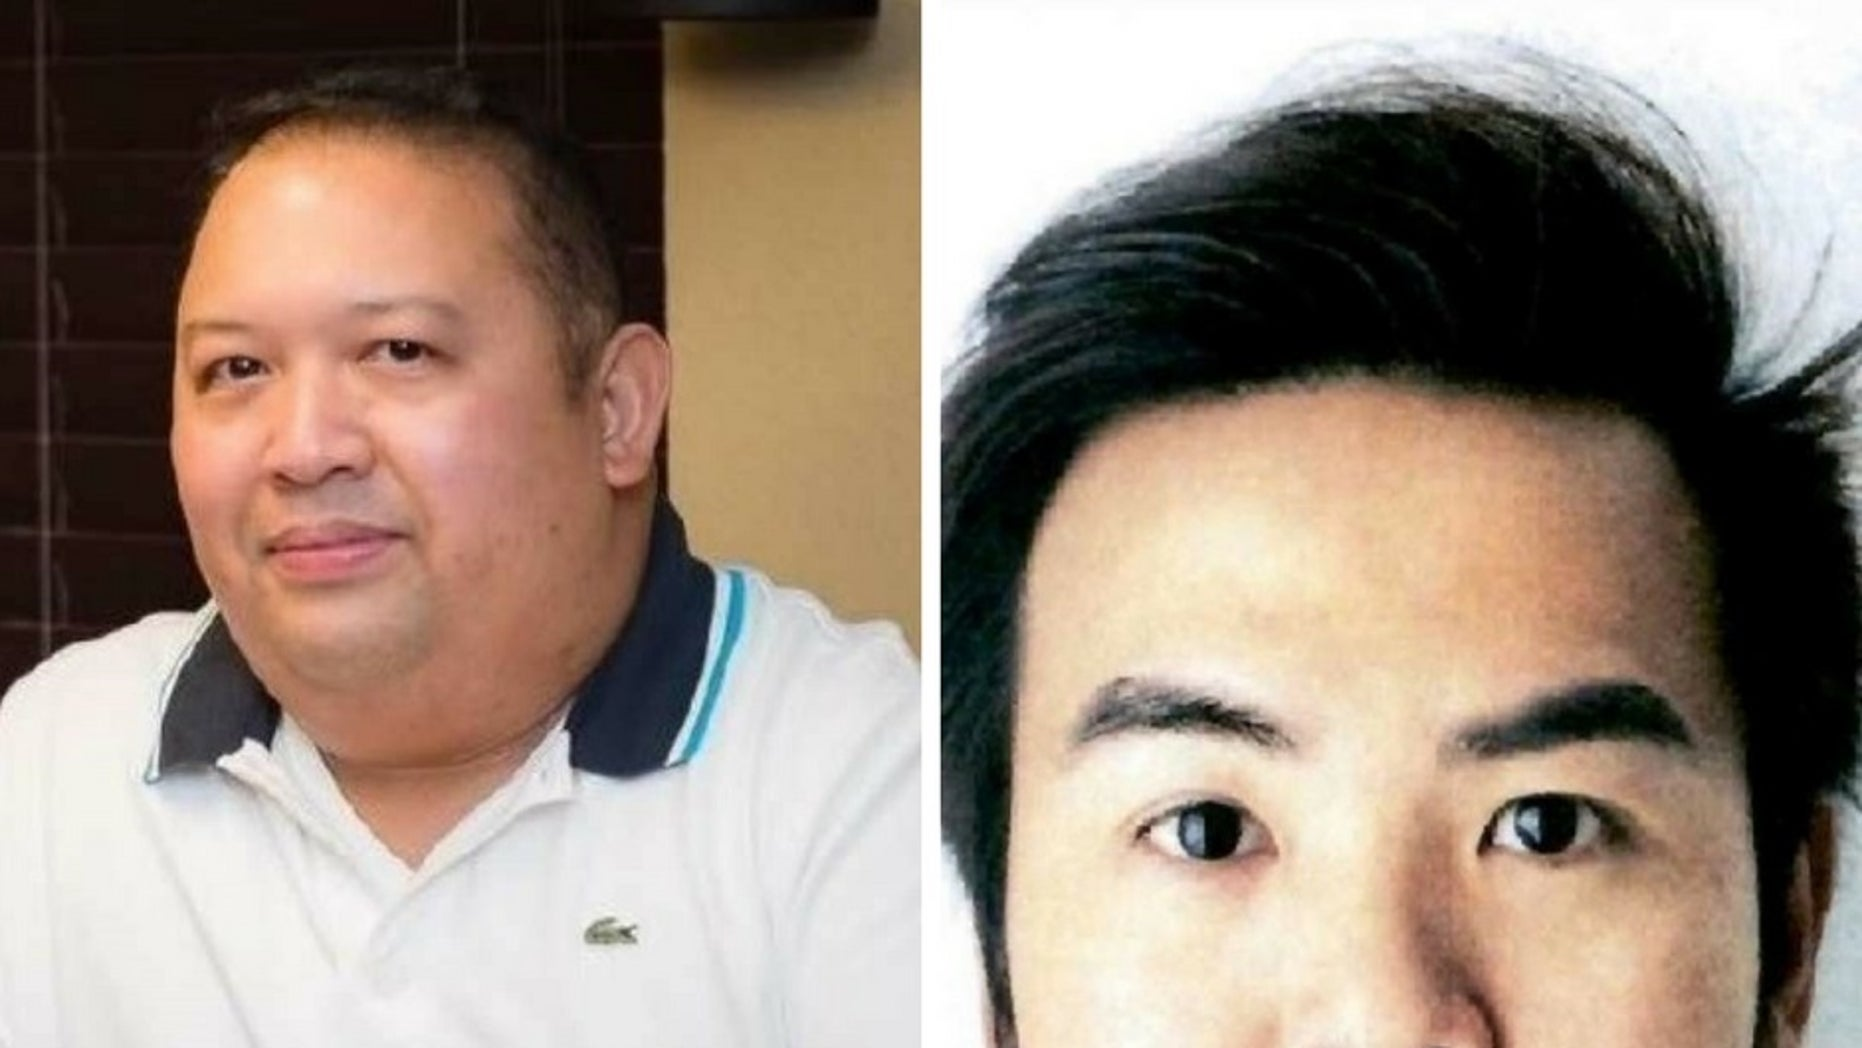 Glenser Soliman, 44, left, and An Vinh Nguyen, 26, are believed to have been murdered.